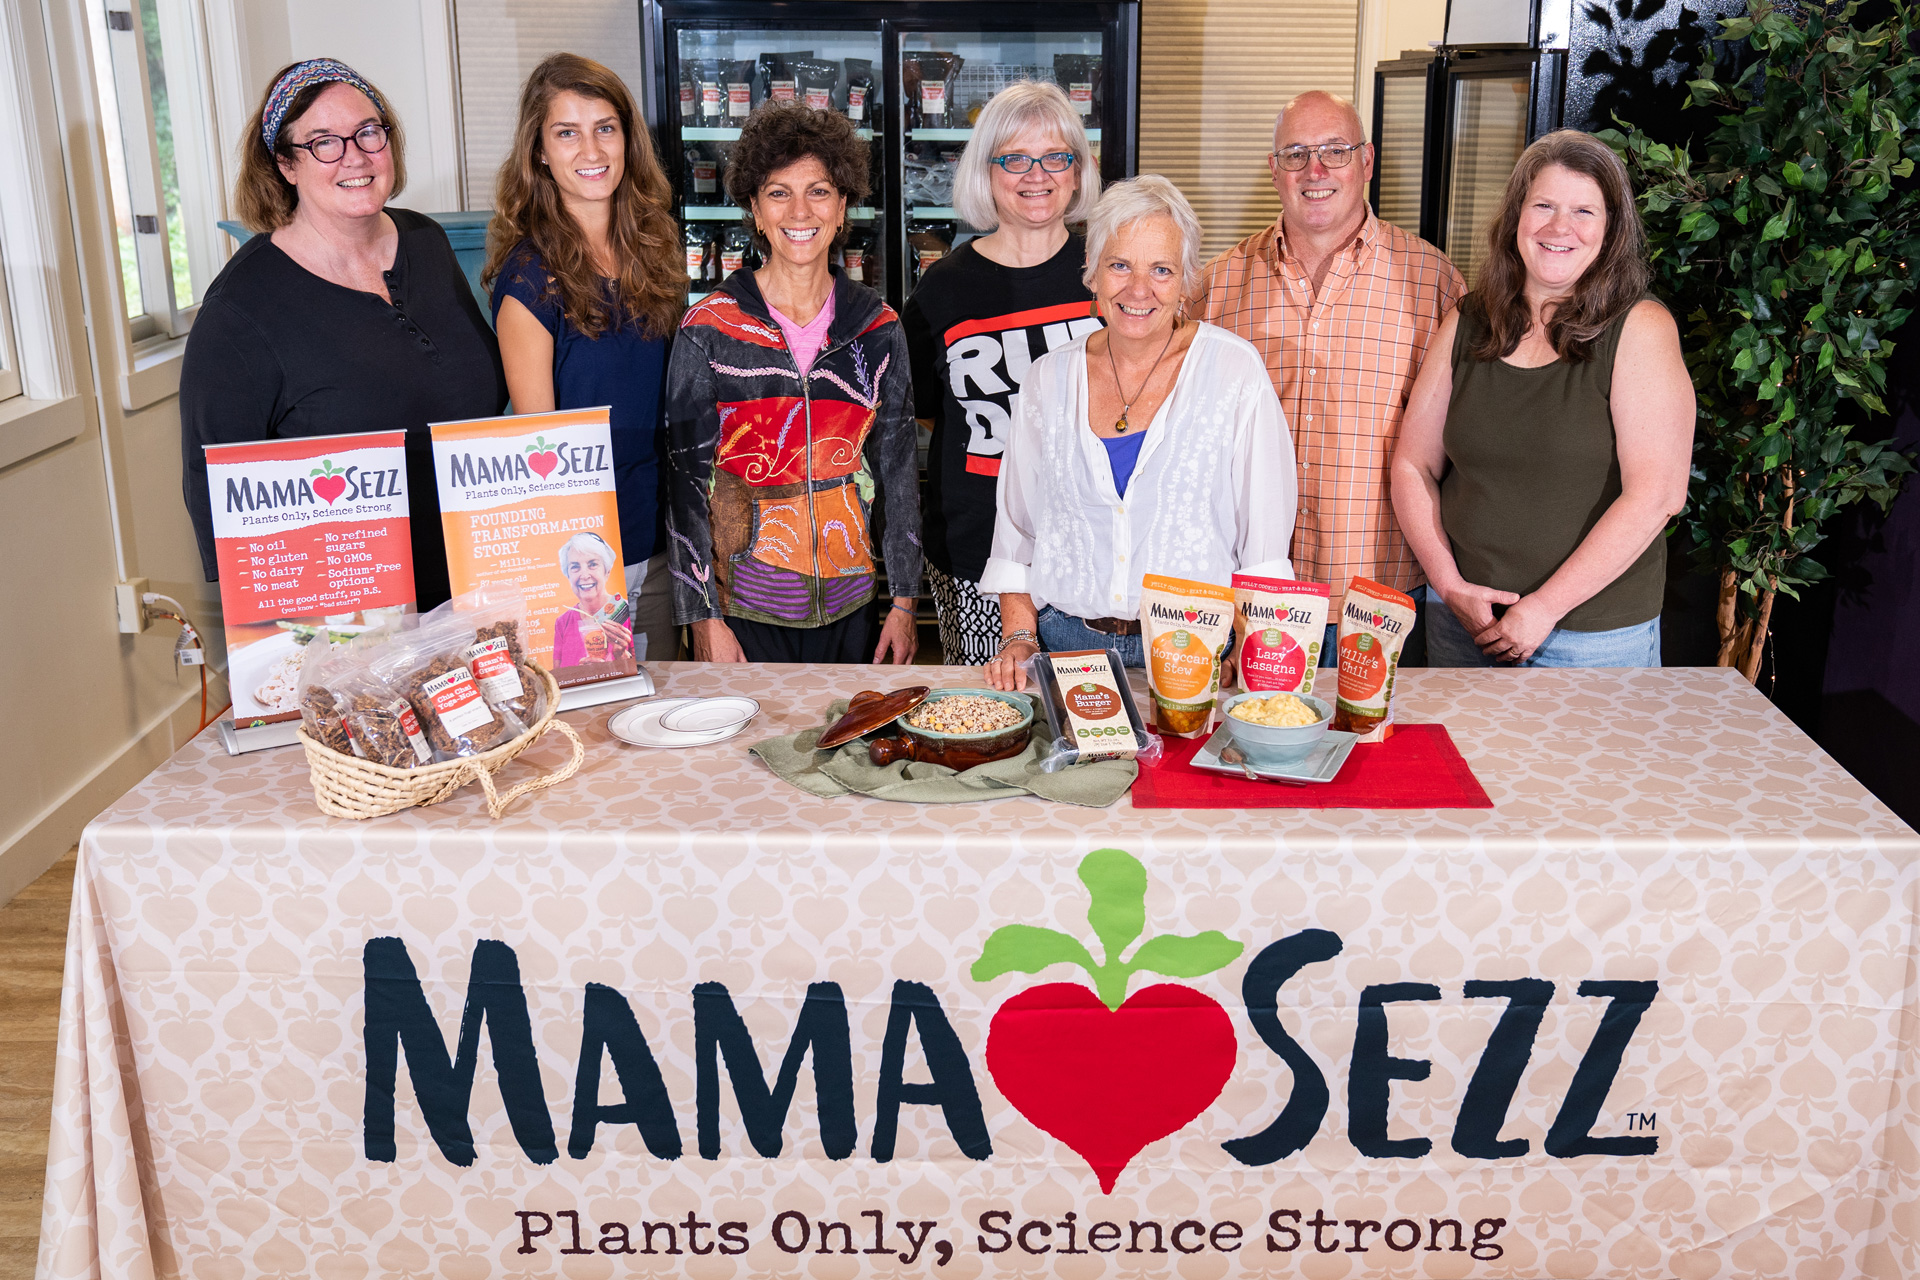 Employees of MamaSezz, a whole-food, plants-based food service in Keene and Brattleboro.